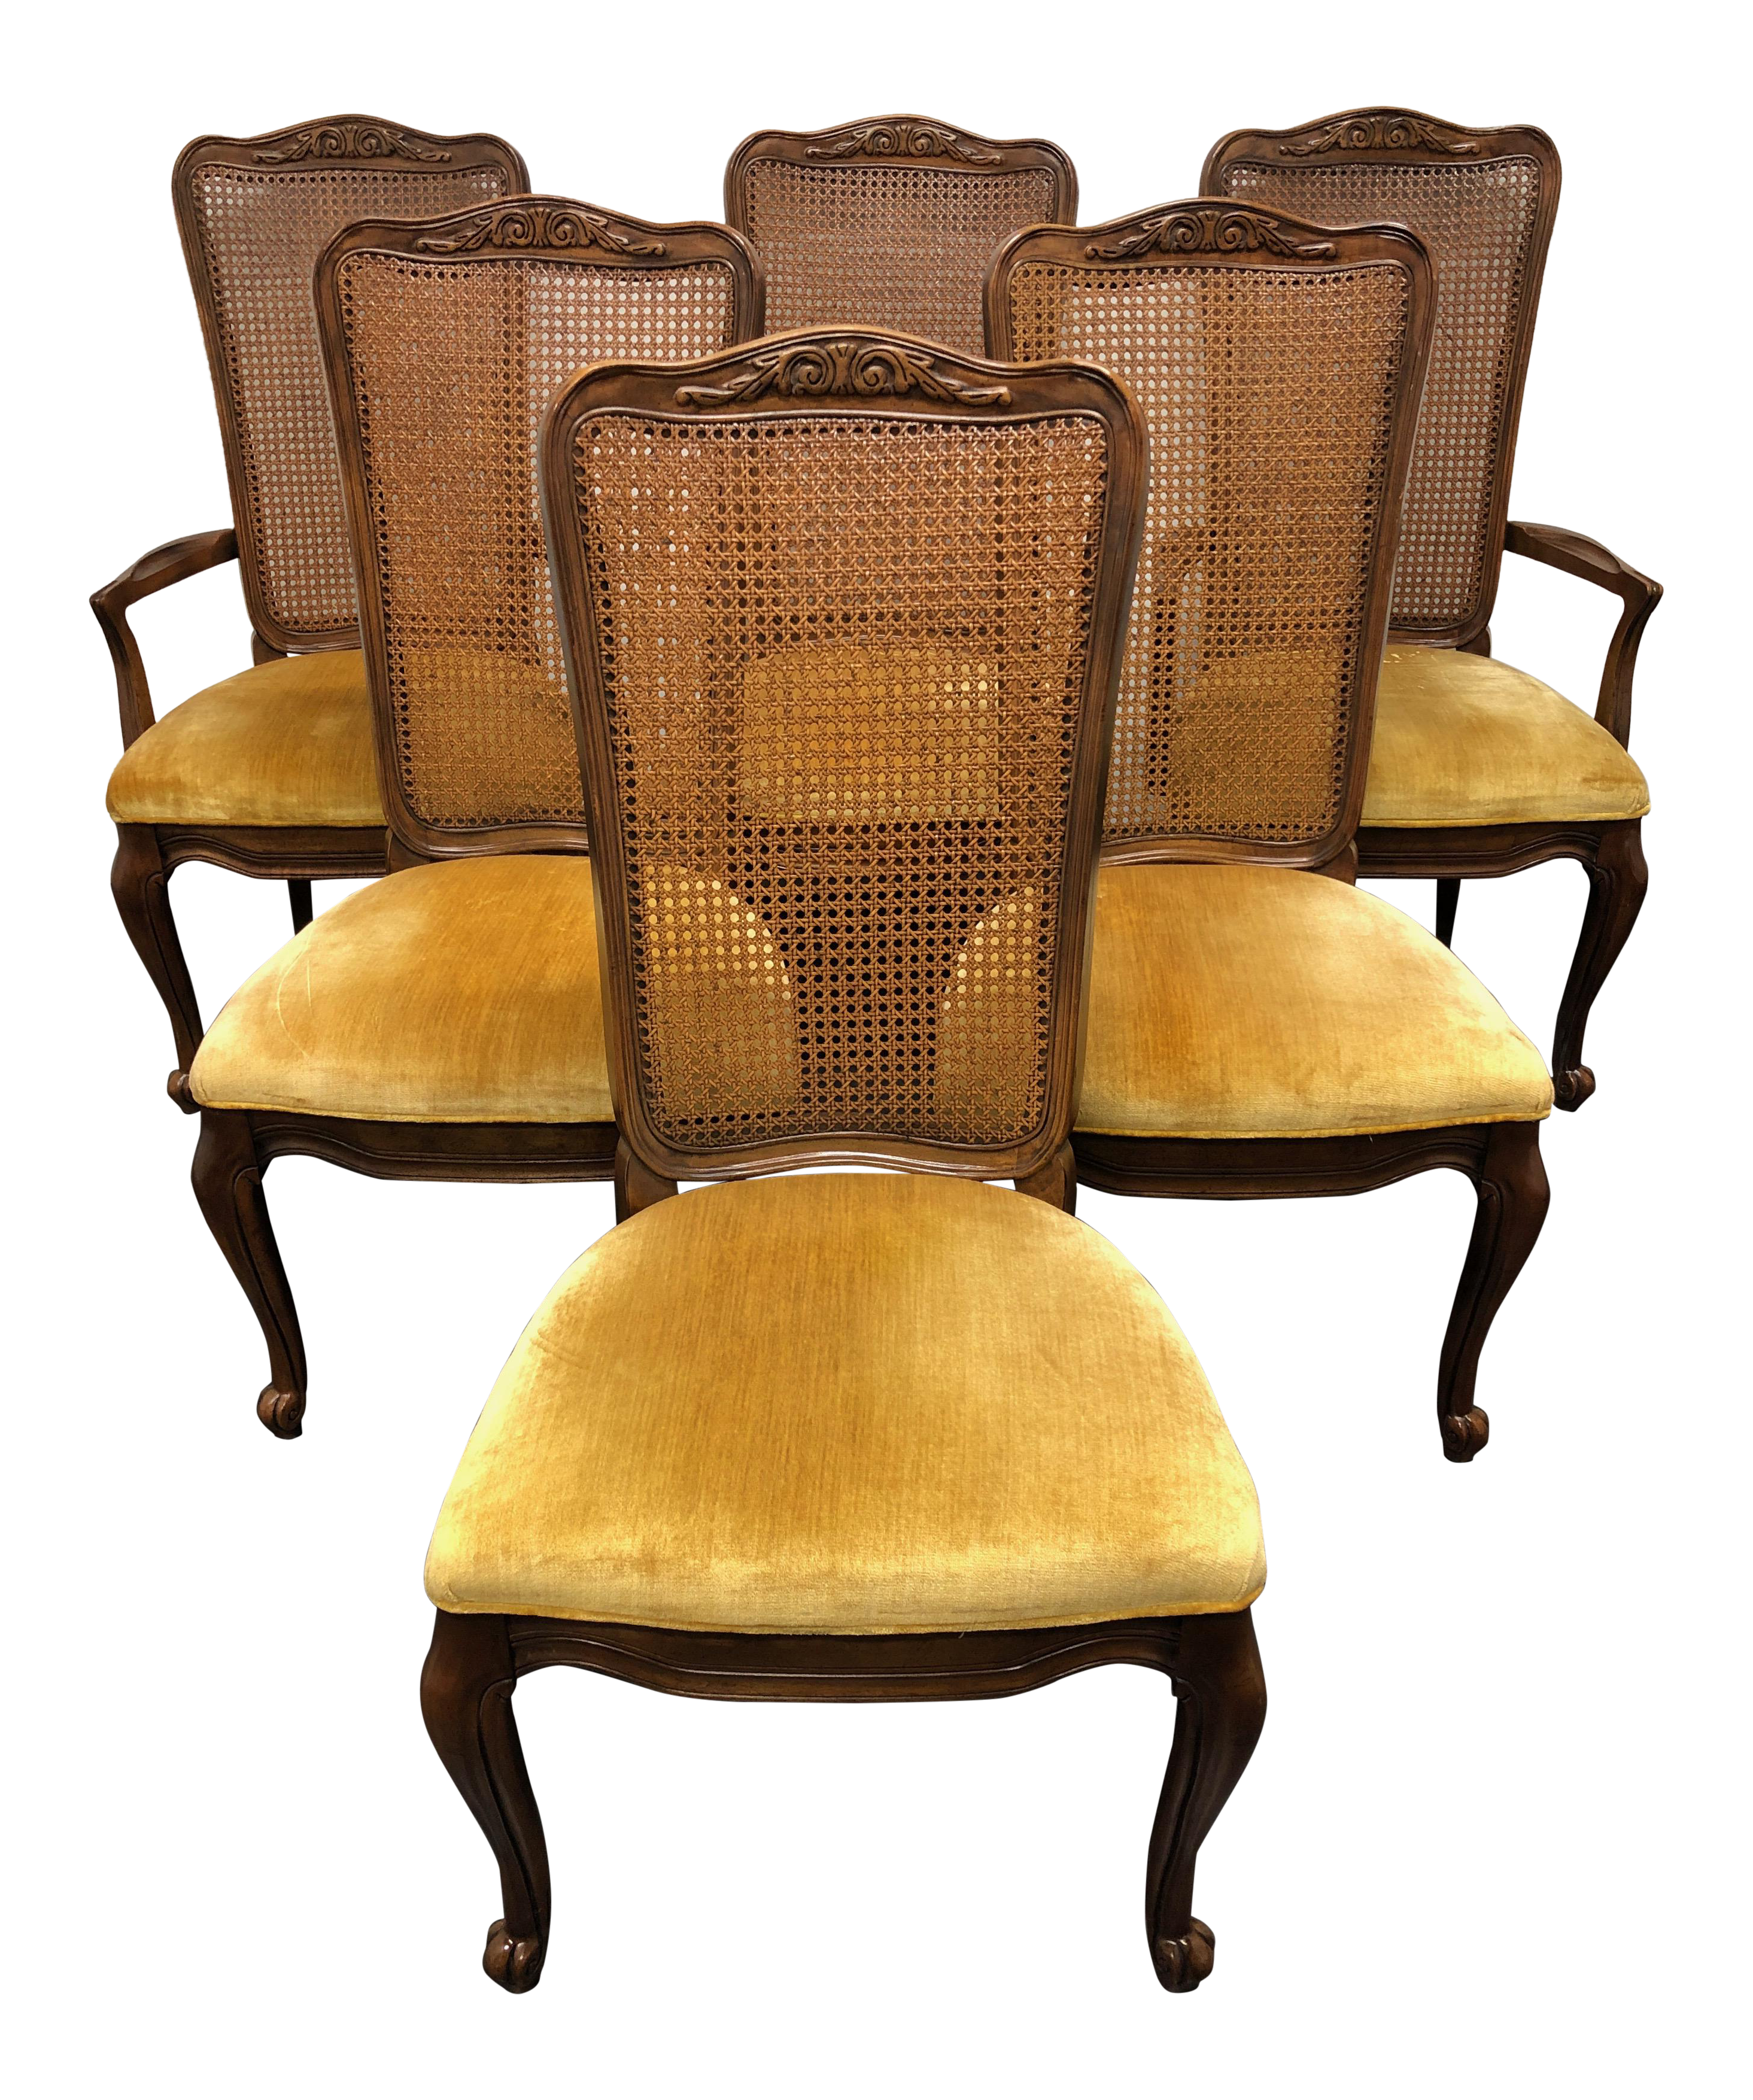 Excellent Gently Used White Furniture Up To 70 Off At Chairish Machost Co Dining Chair Design Ideas Machostcouk